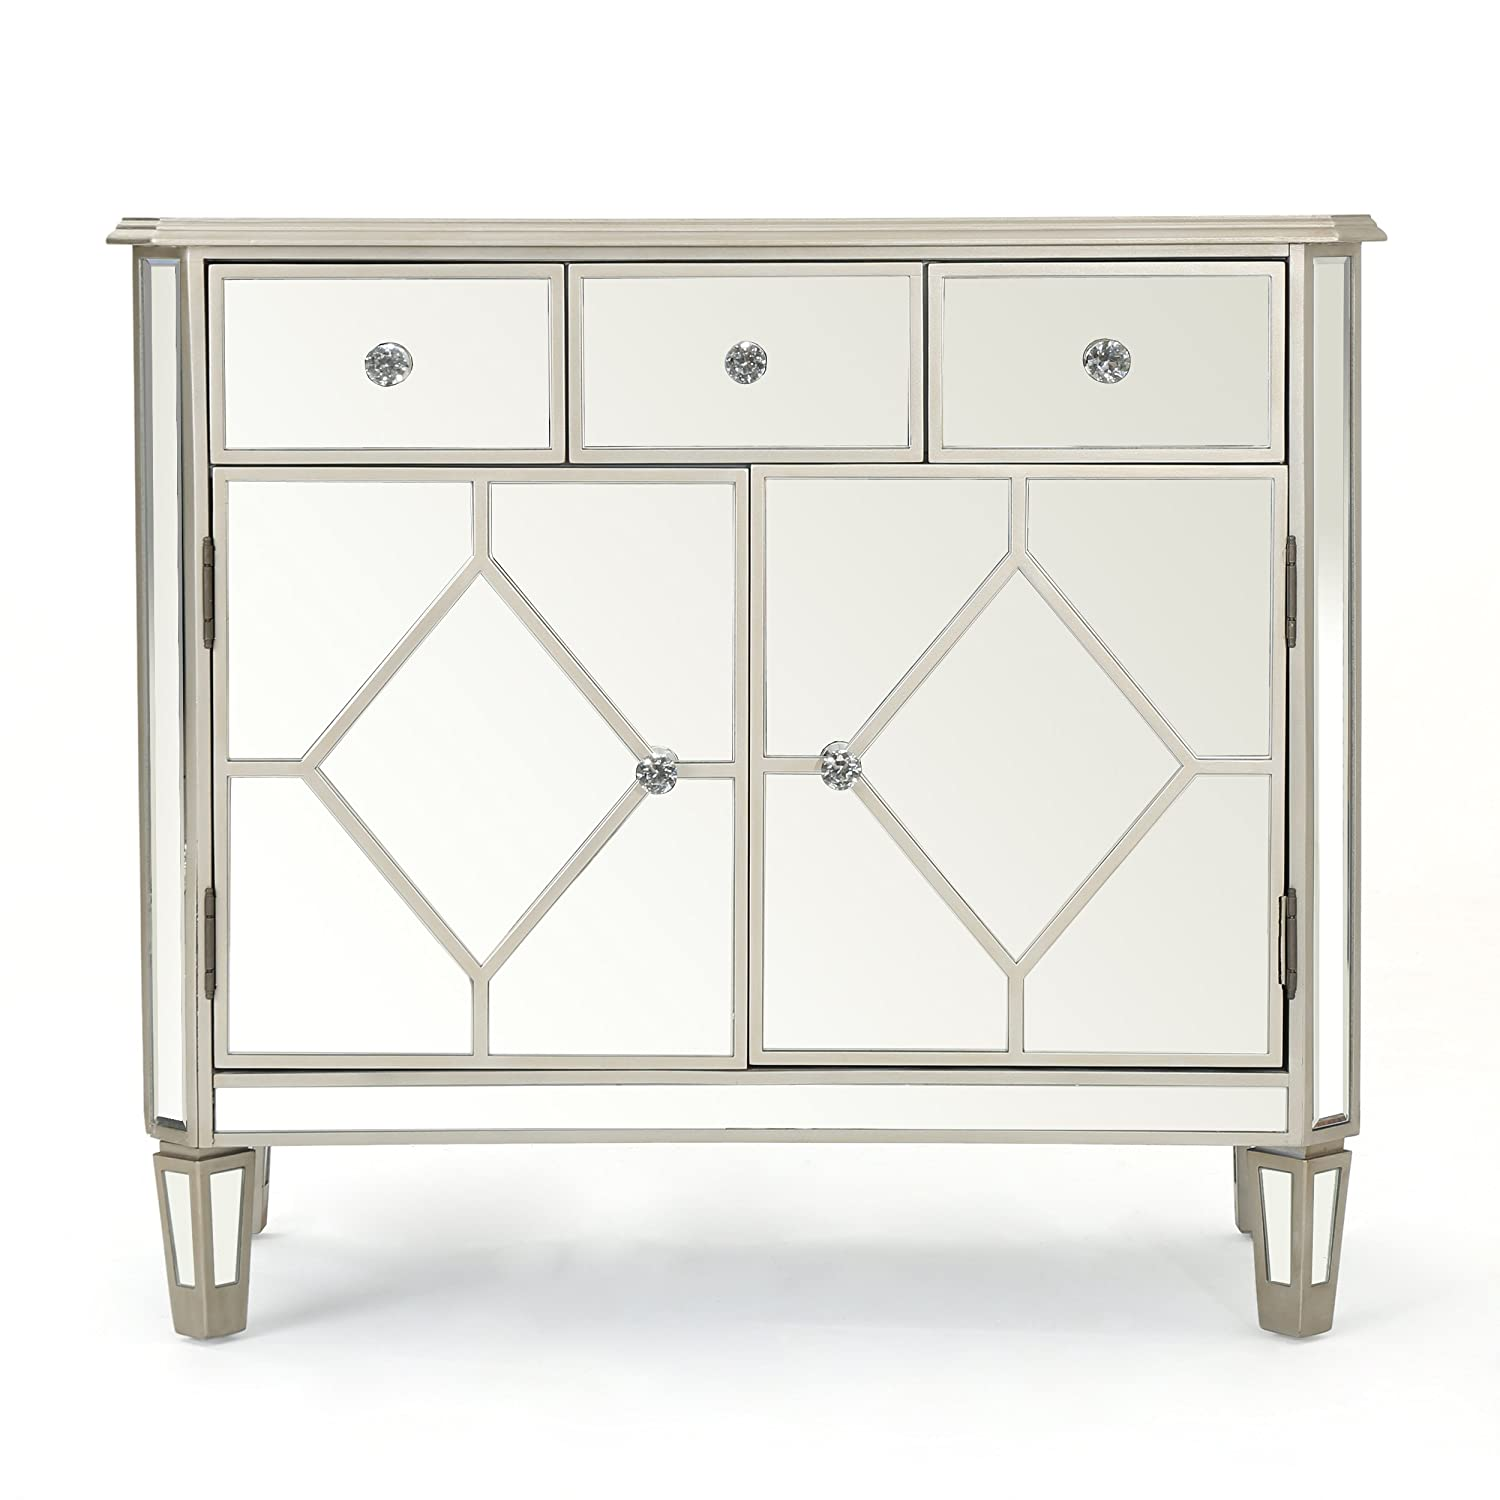 Amazon.com: Tobin Silver Finished Mirrored 5 Drawer Cabinet with Faux Wood  Frame: Kitchen & Dining